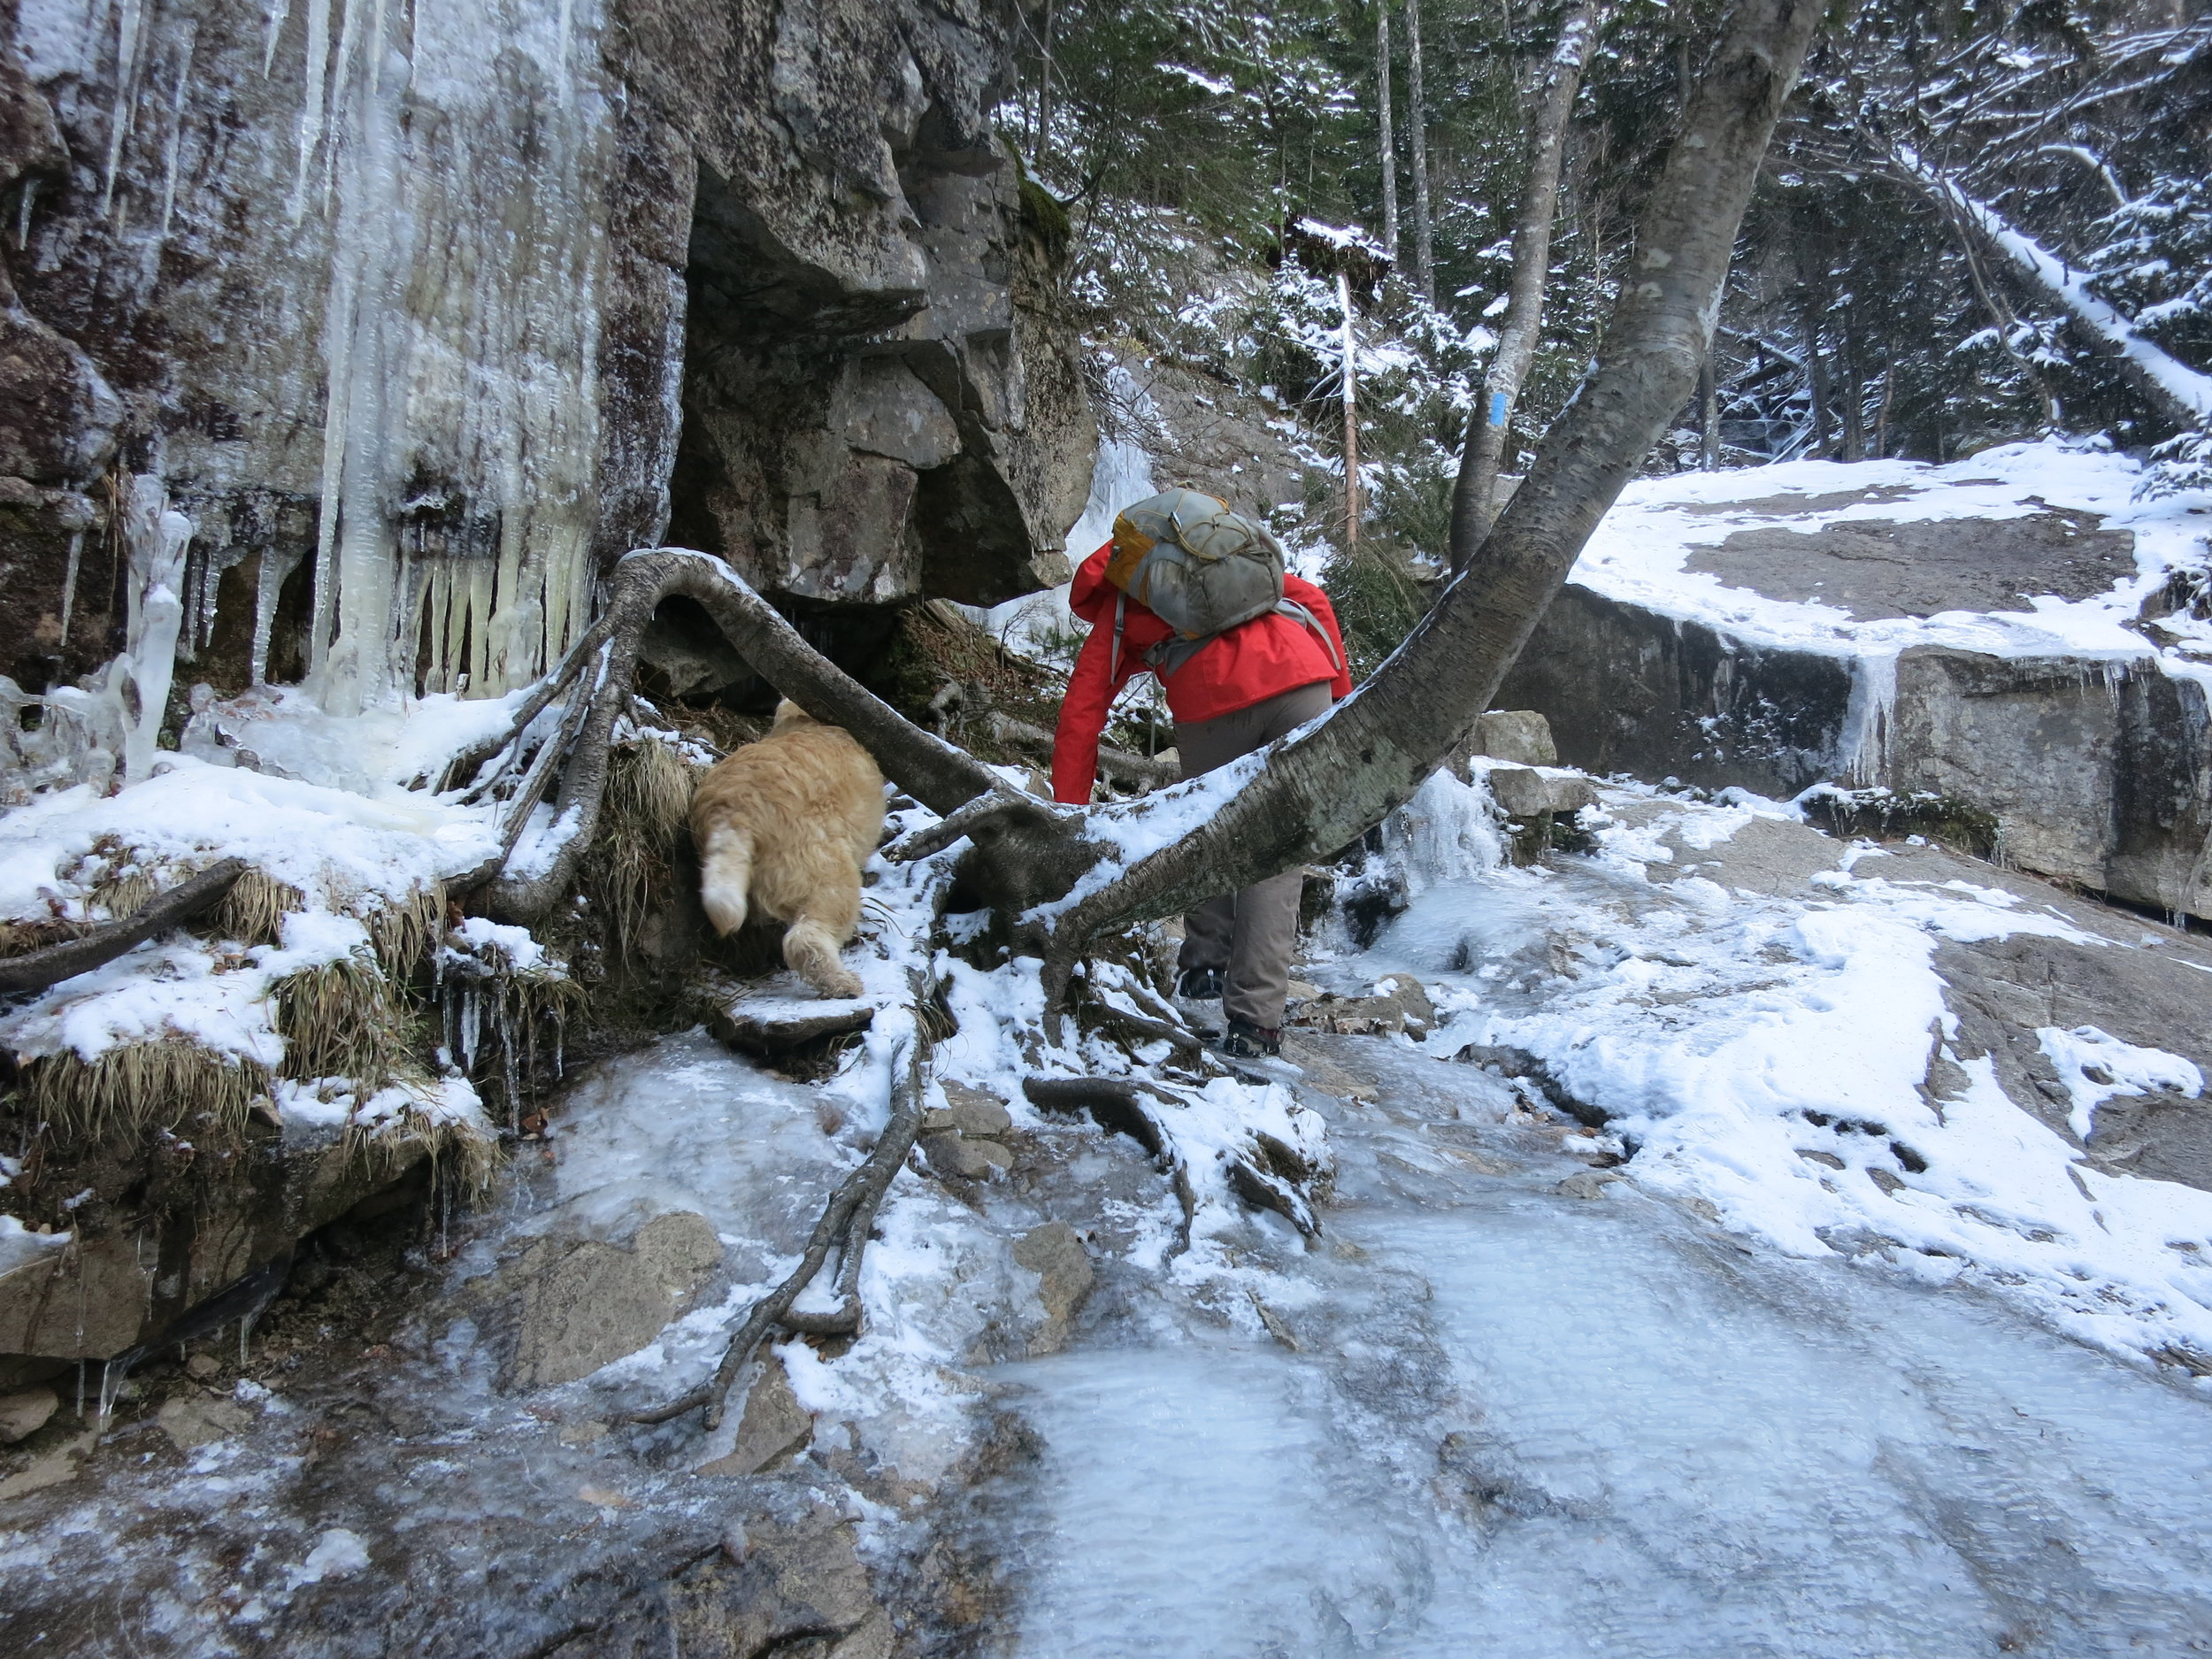 The ice ledge pictured here is steeper than it looks and drops off into a waterfall. That's why the dog decided to head under the tree root.